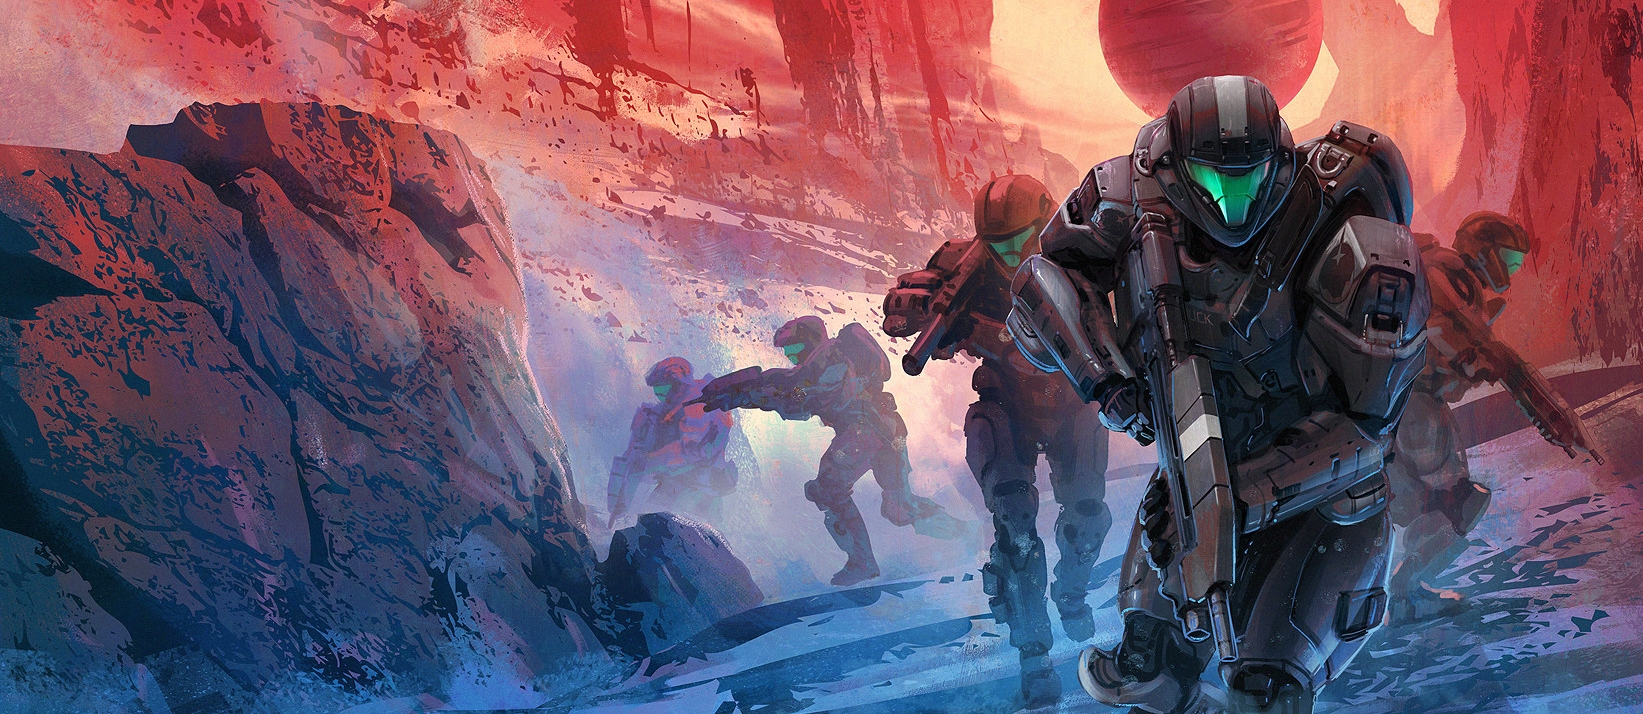 BATTLE OF CASSIDY III - Spartan-IV fireteam Alpha-Nine during an unknown mission, c. 2558.